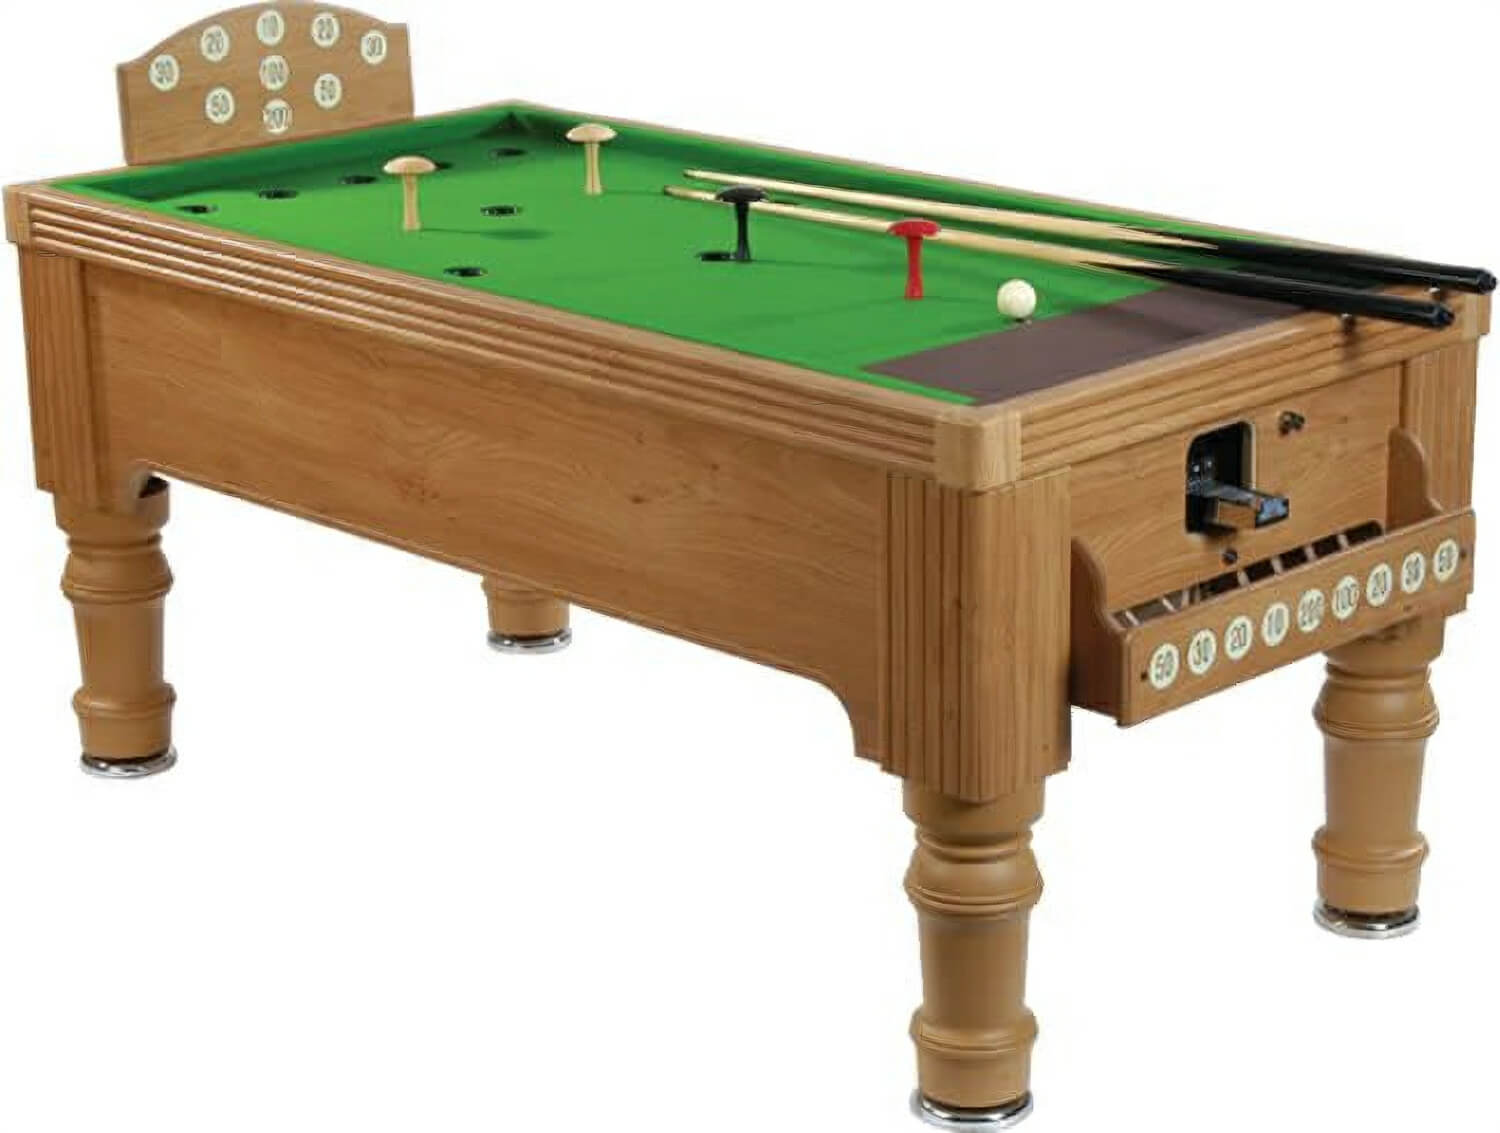 Supreme bar billiards table 6 foot liberty games for Table 6 foot